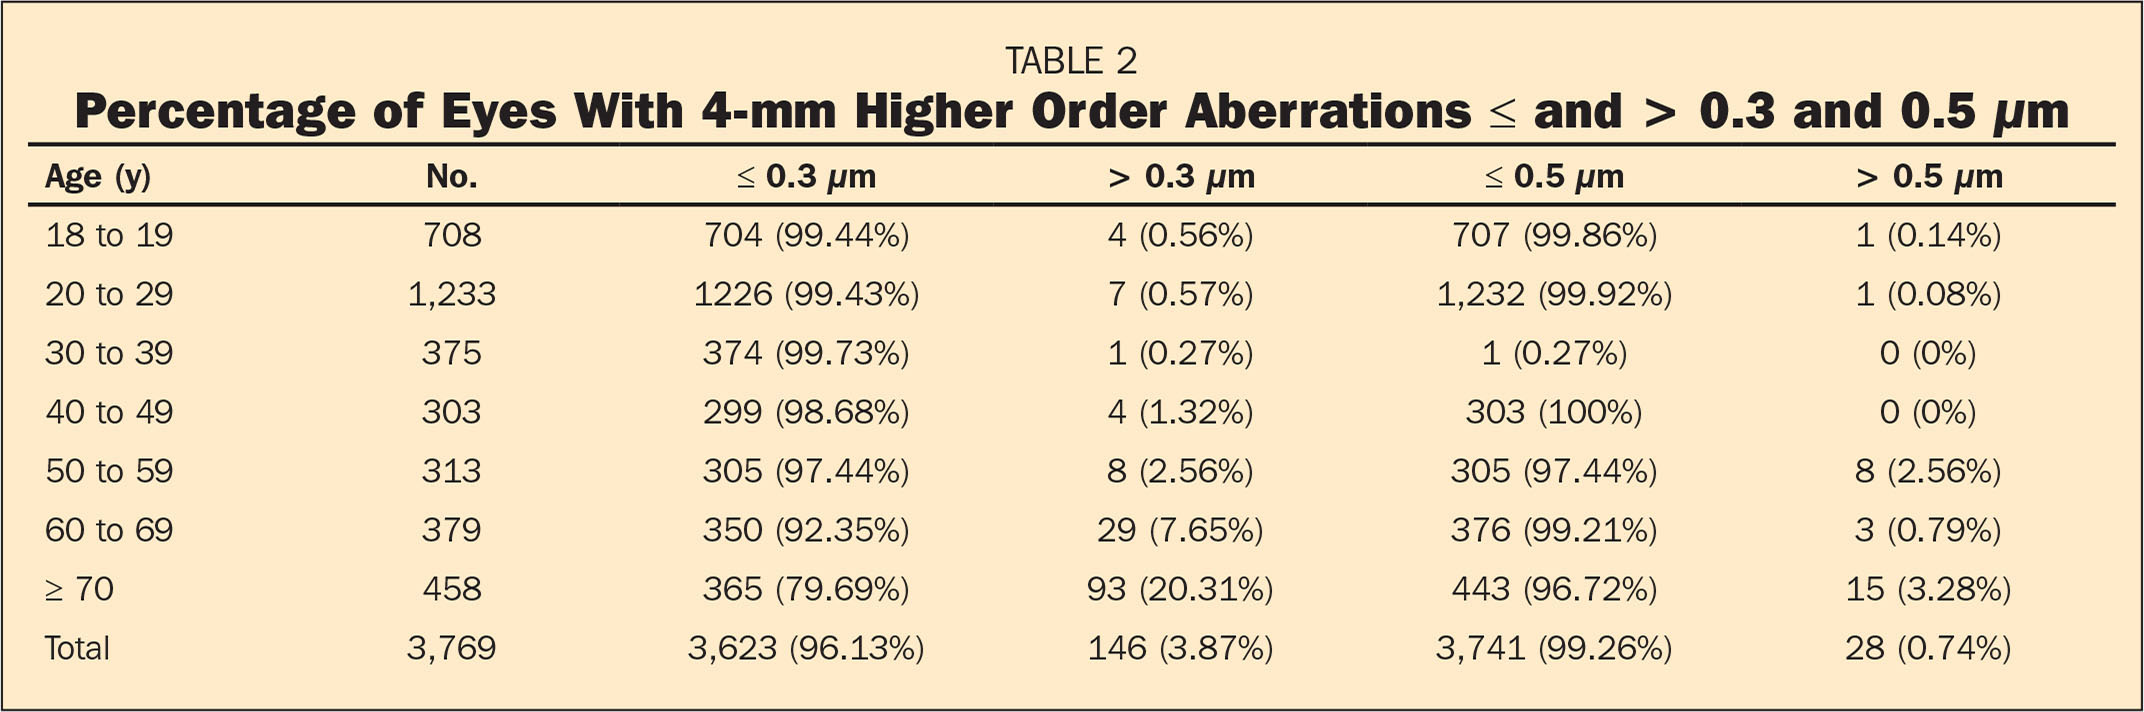 Percentage of Eyes With 4-mm Higher Order Aberrations ≤ and > 0.3 and 0.5 µm